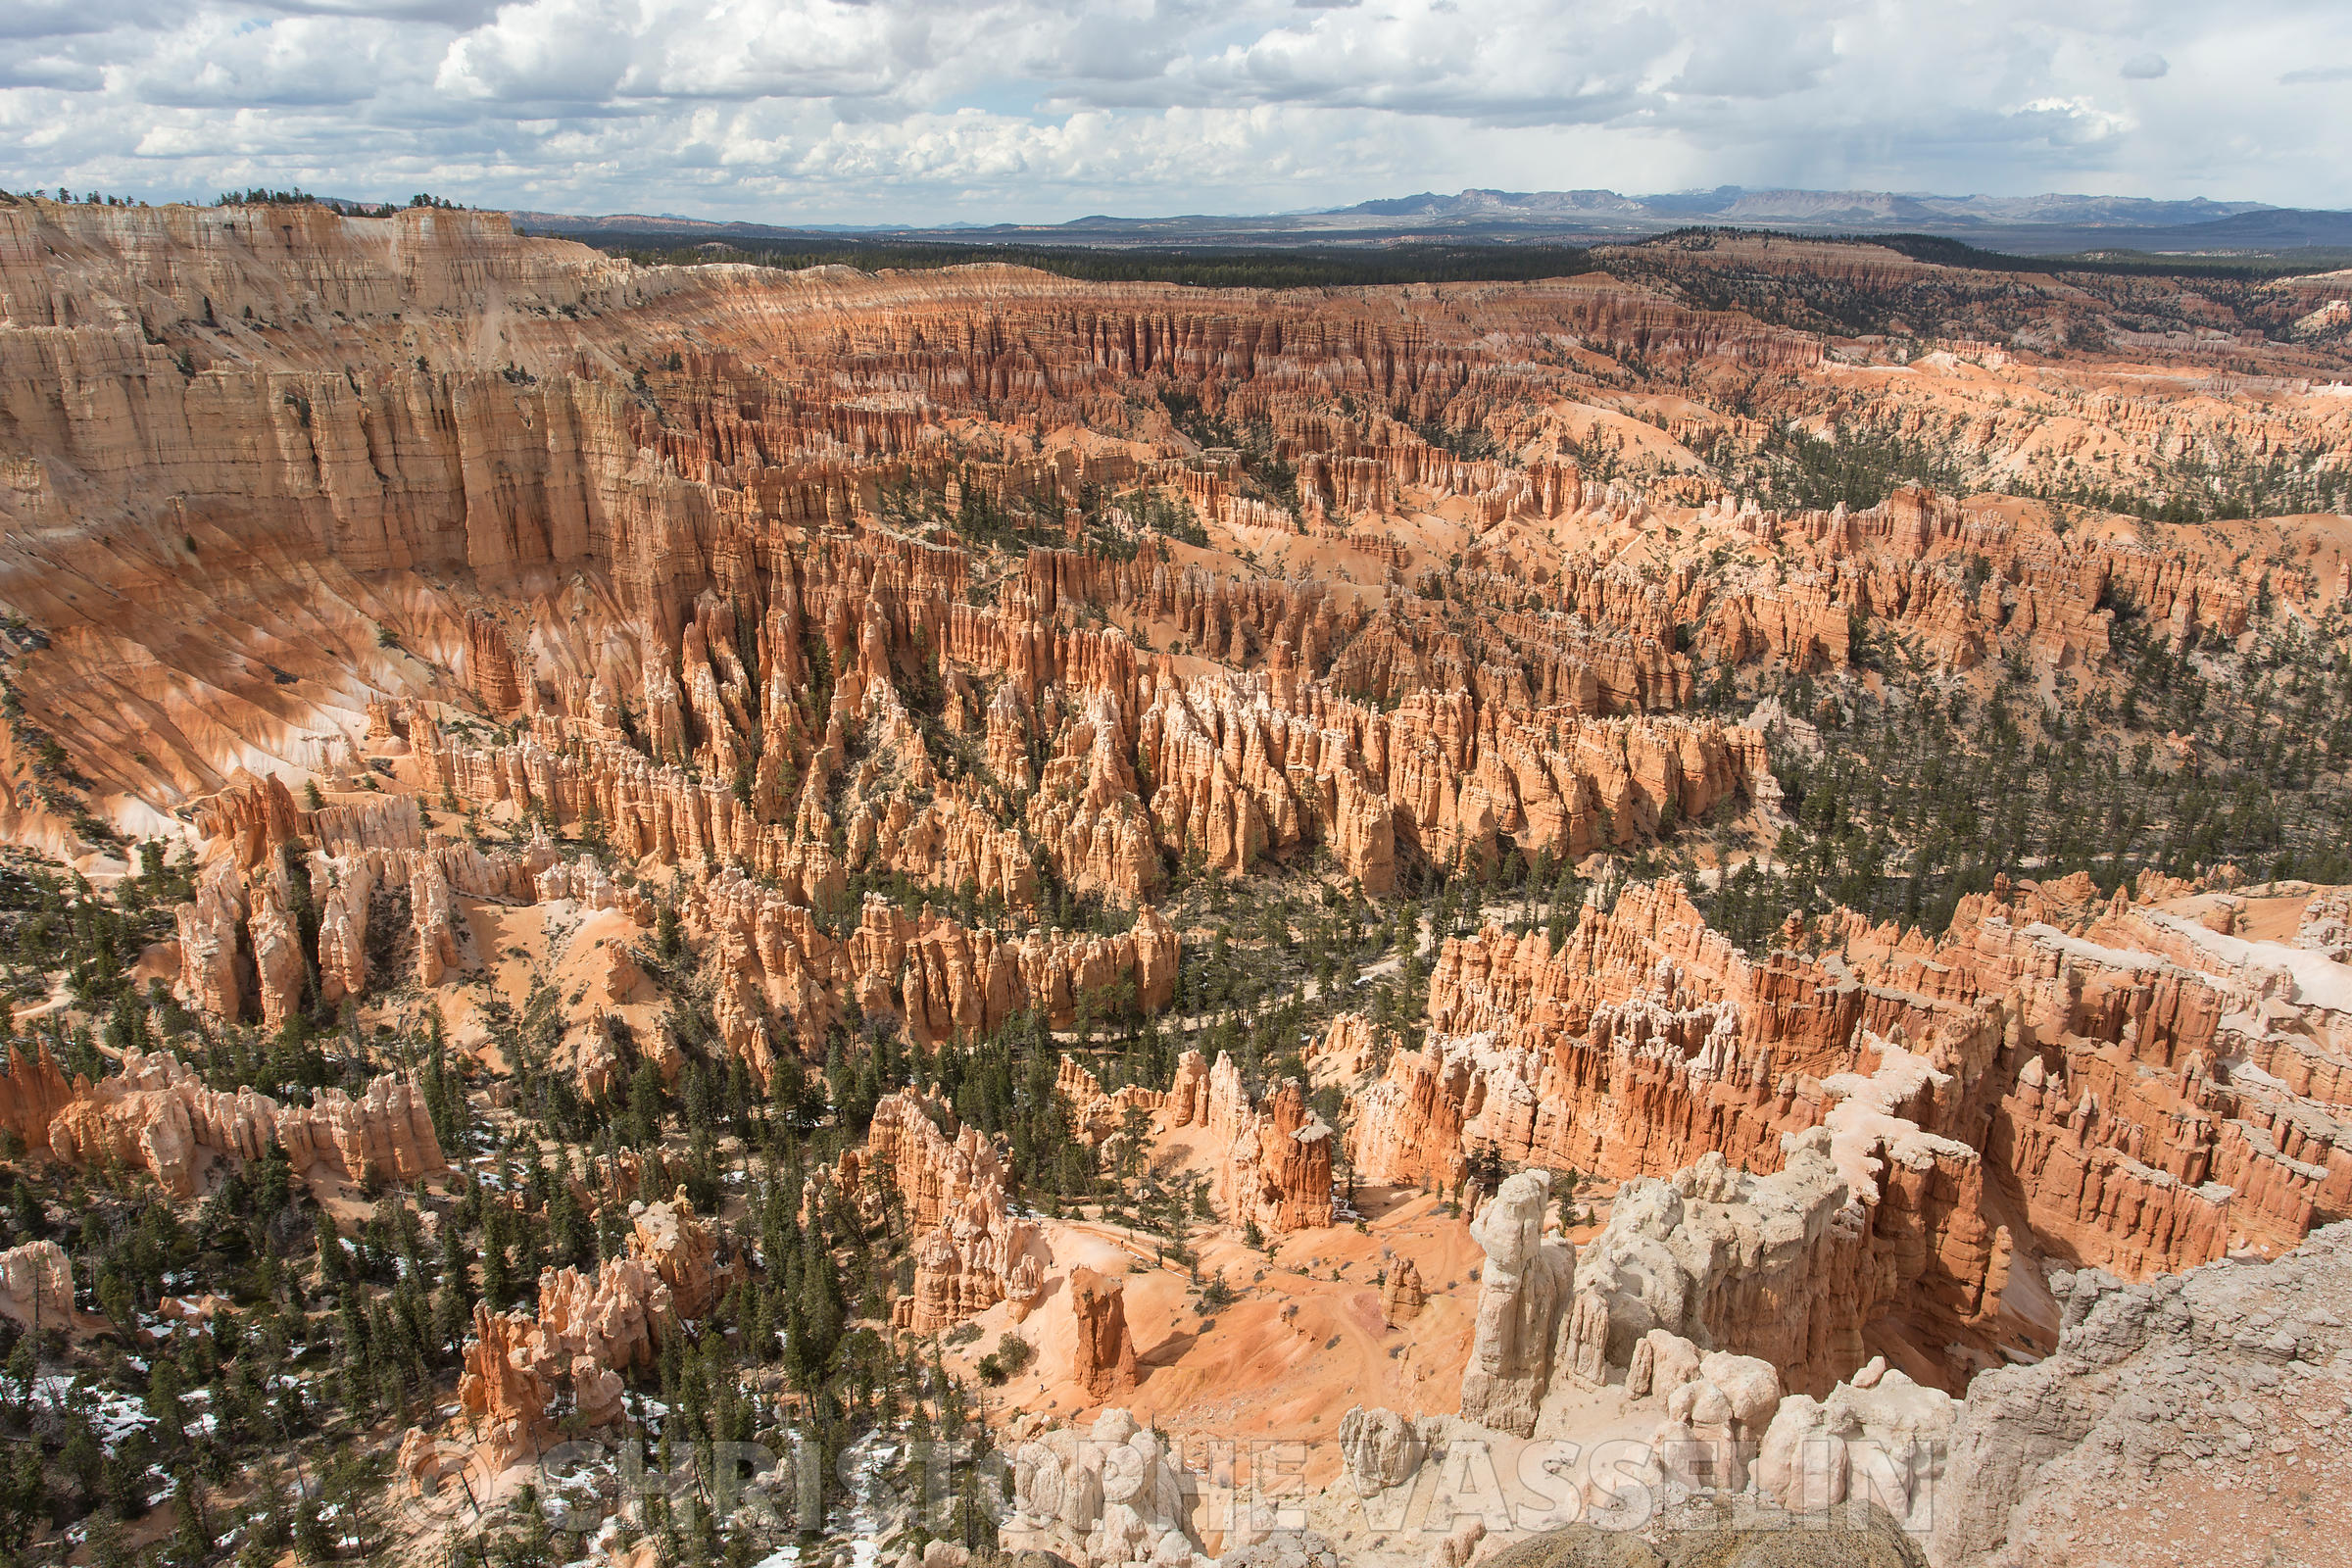 Inspiration point - Bryce Canyon National Park - Utah